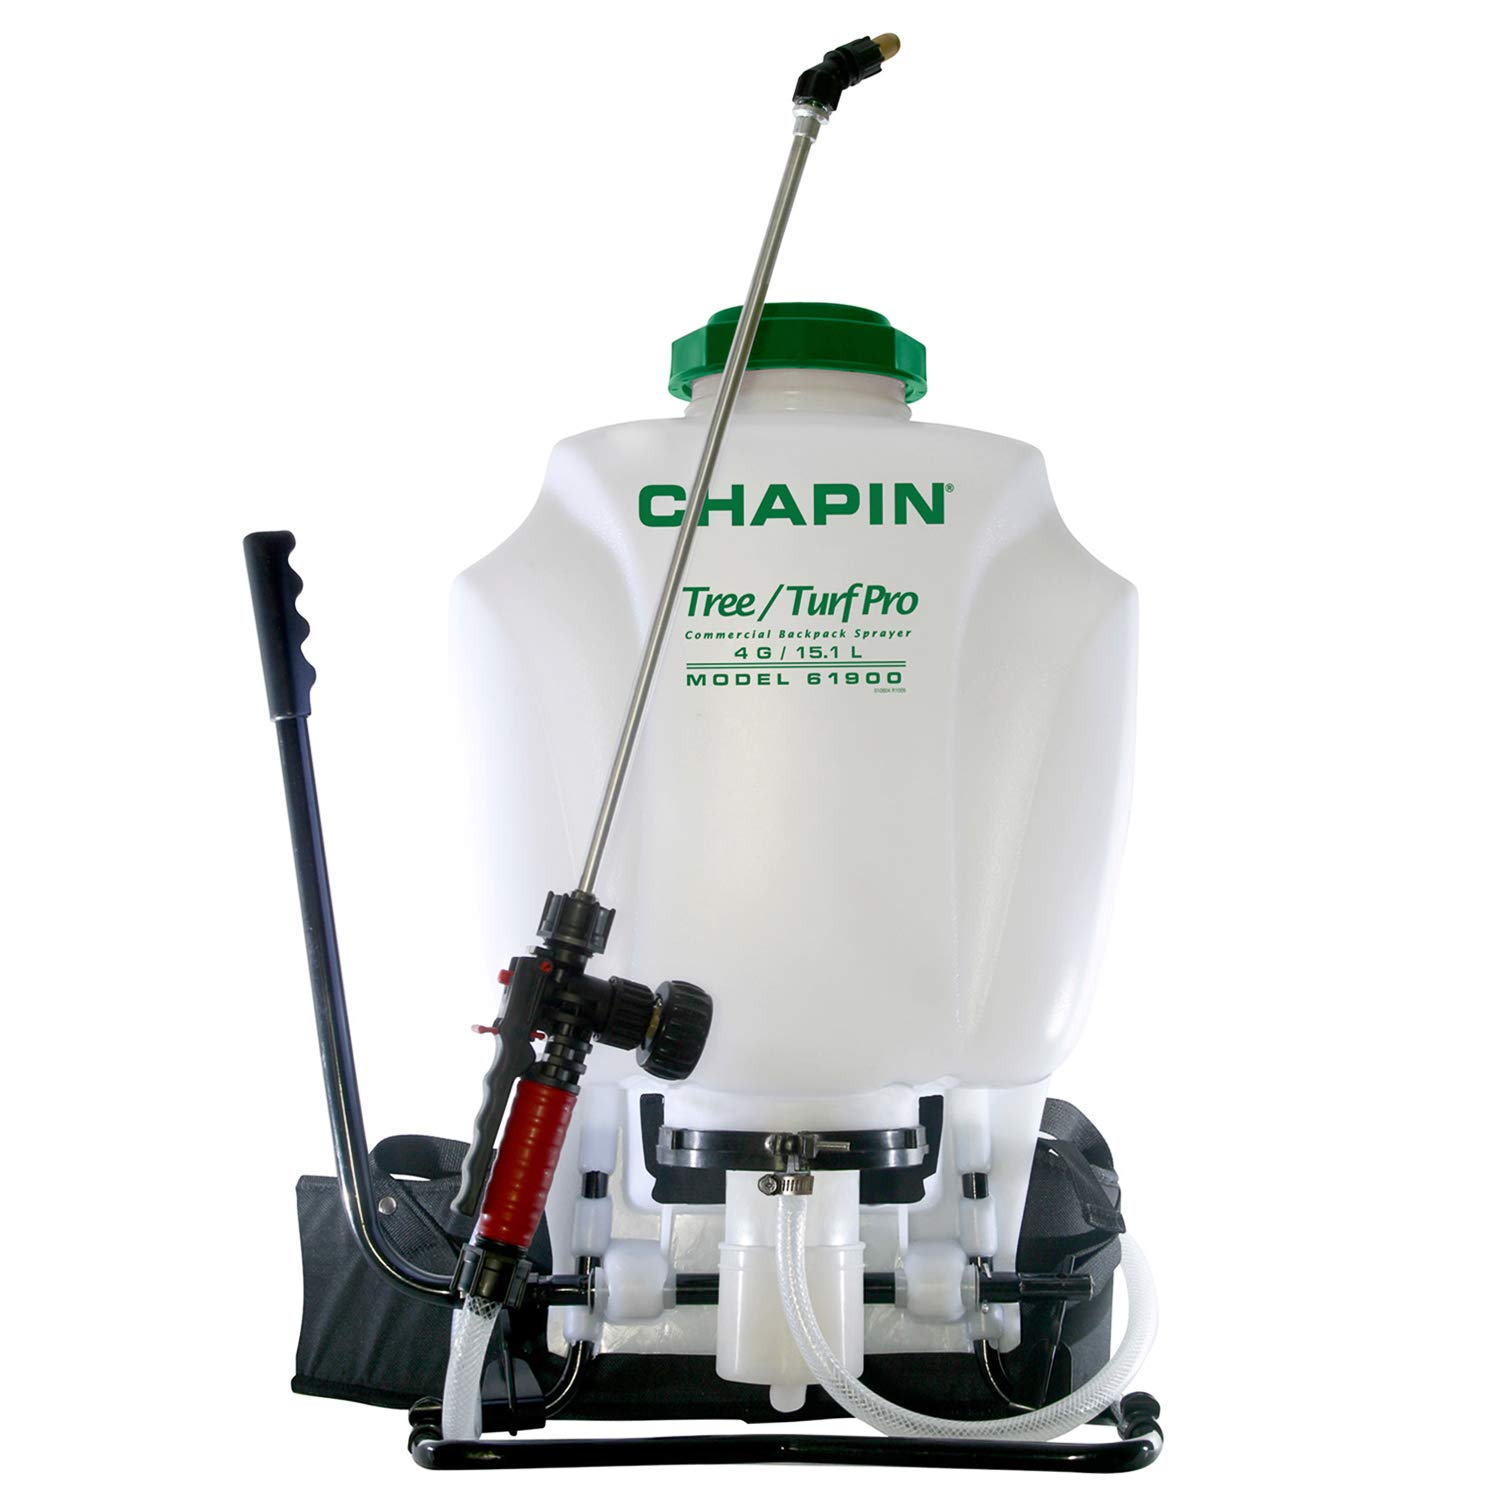 Chapin 61900 sprayer